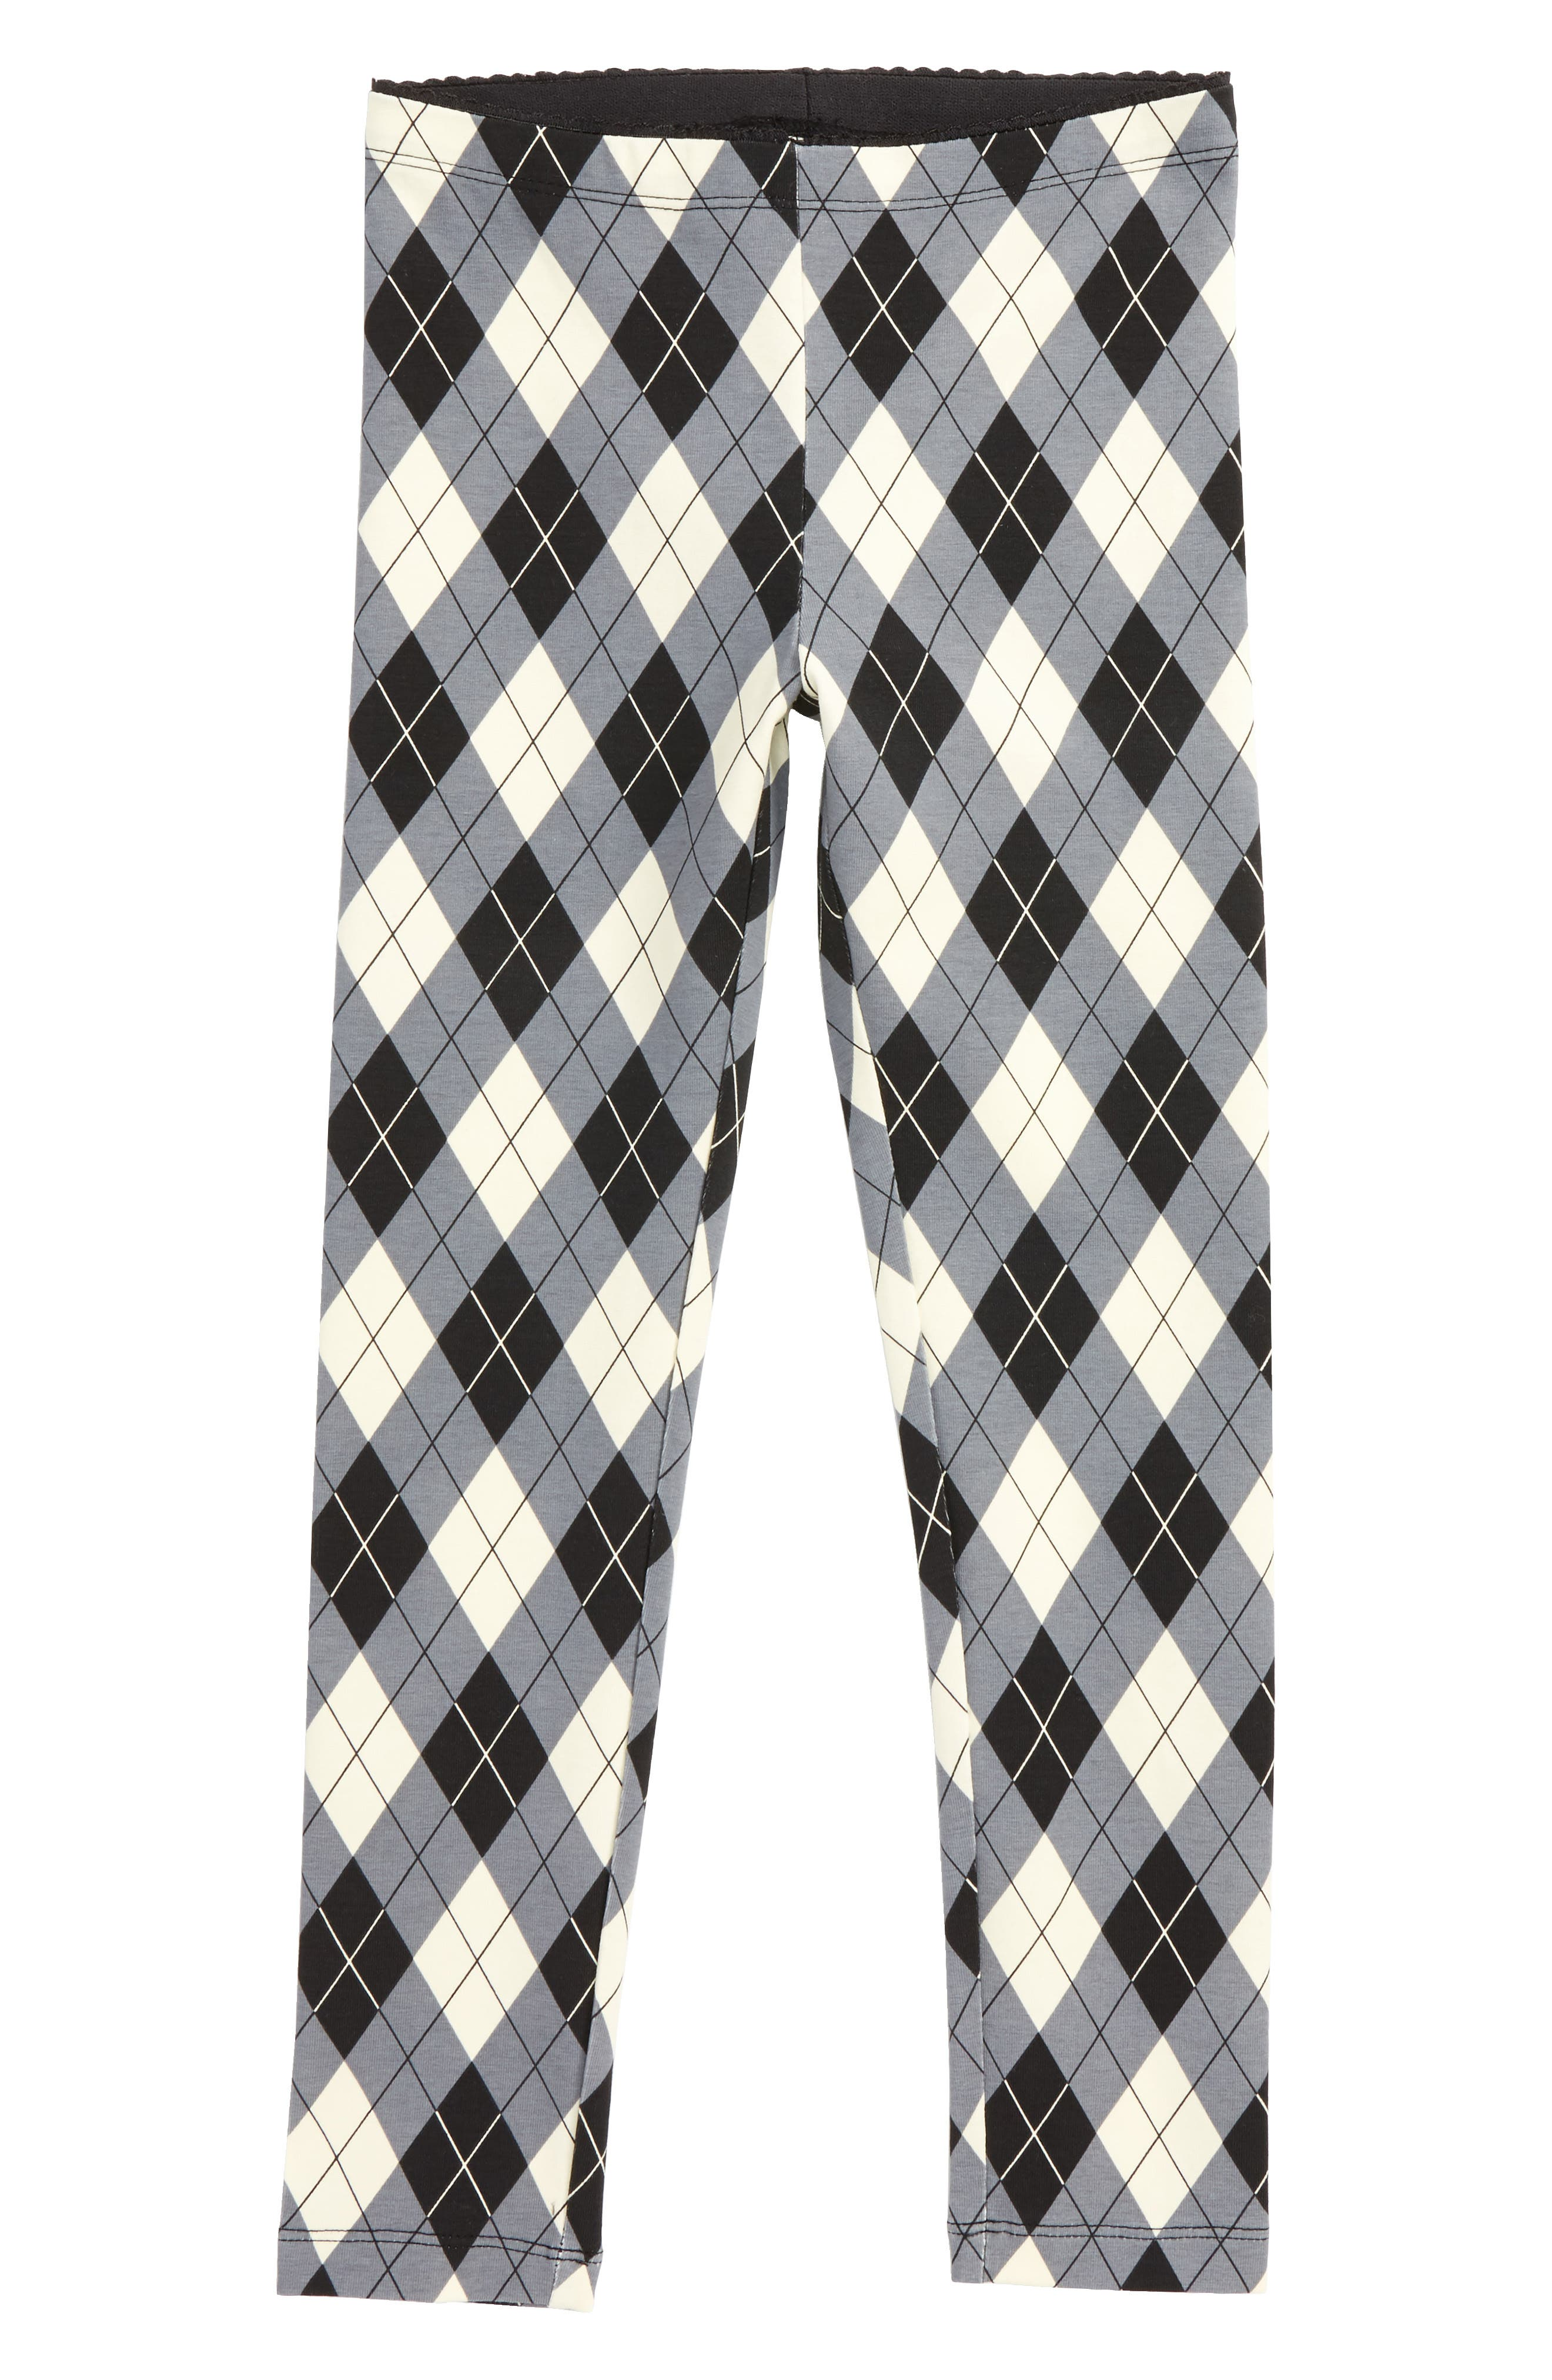 Alternate Image 1 Selected - Tea Collection Argyle Plaid Leggings (Toddler Girls, Little Girls & Big Girls)